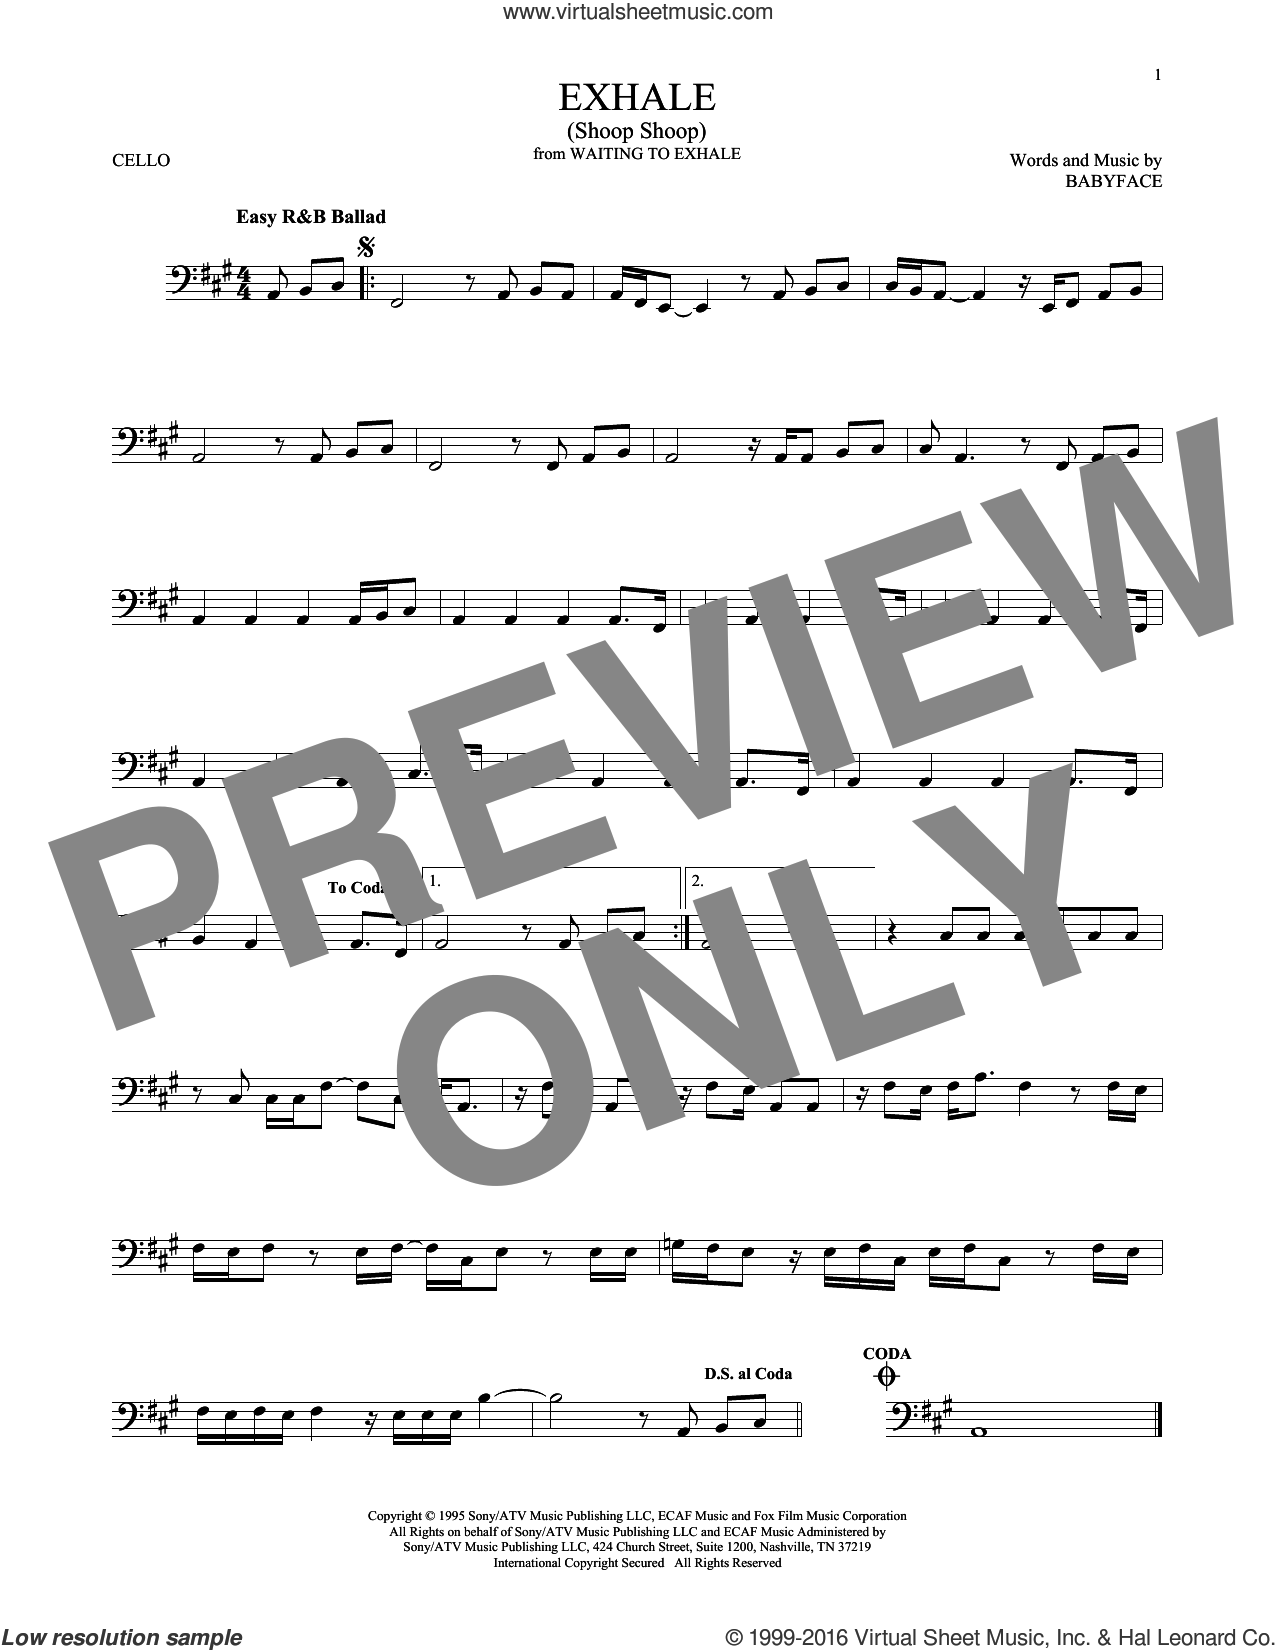 Exhale (Shoop Shoop) sheet music for cello solo by Whitney Houston and Babyface, intermediate skill level